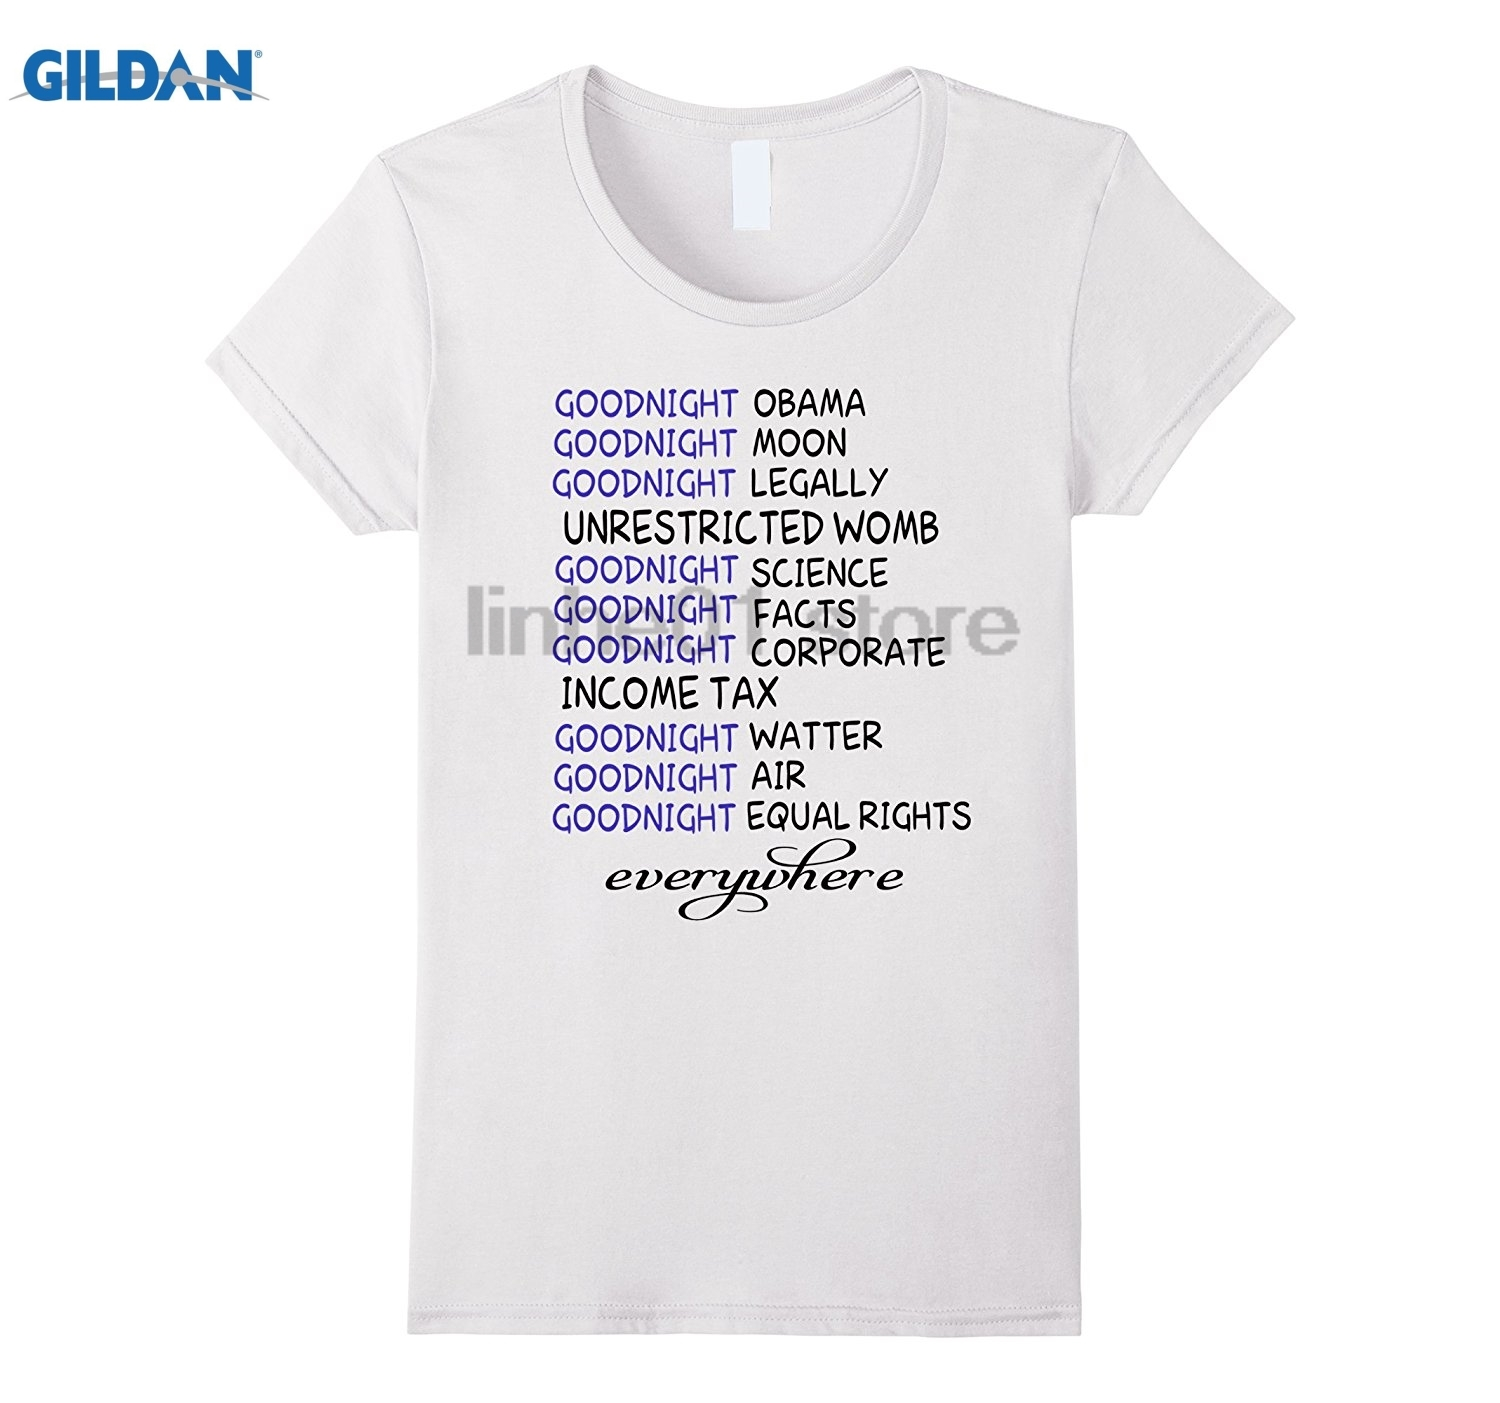 GILDAN Goodnight Air Goodnight Equal rights Everywhere T-Shirt Mothers Day Ms. T-shirt glasses Womens T-shirt